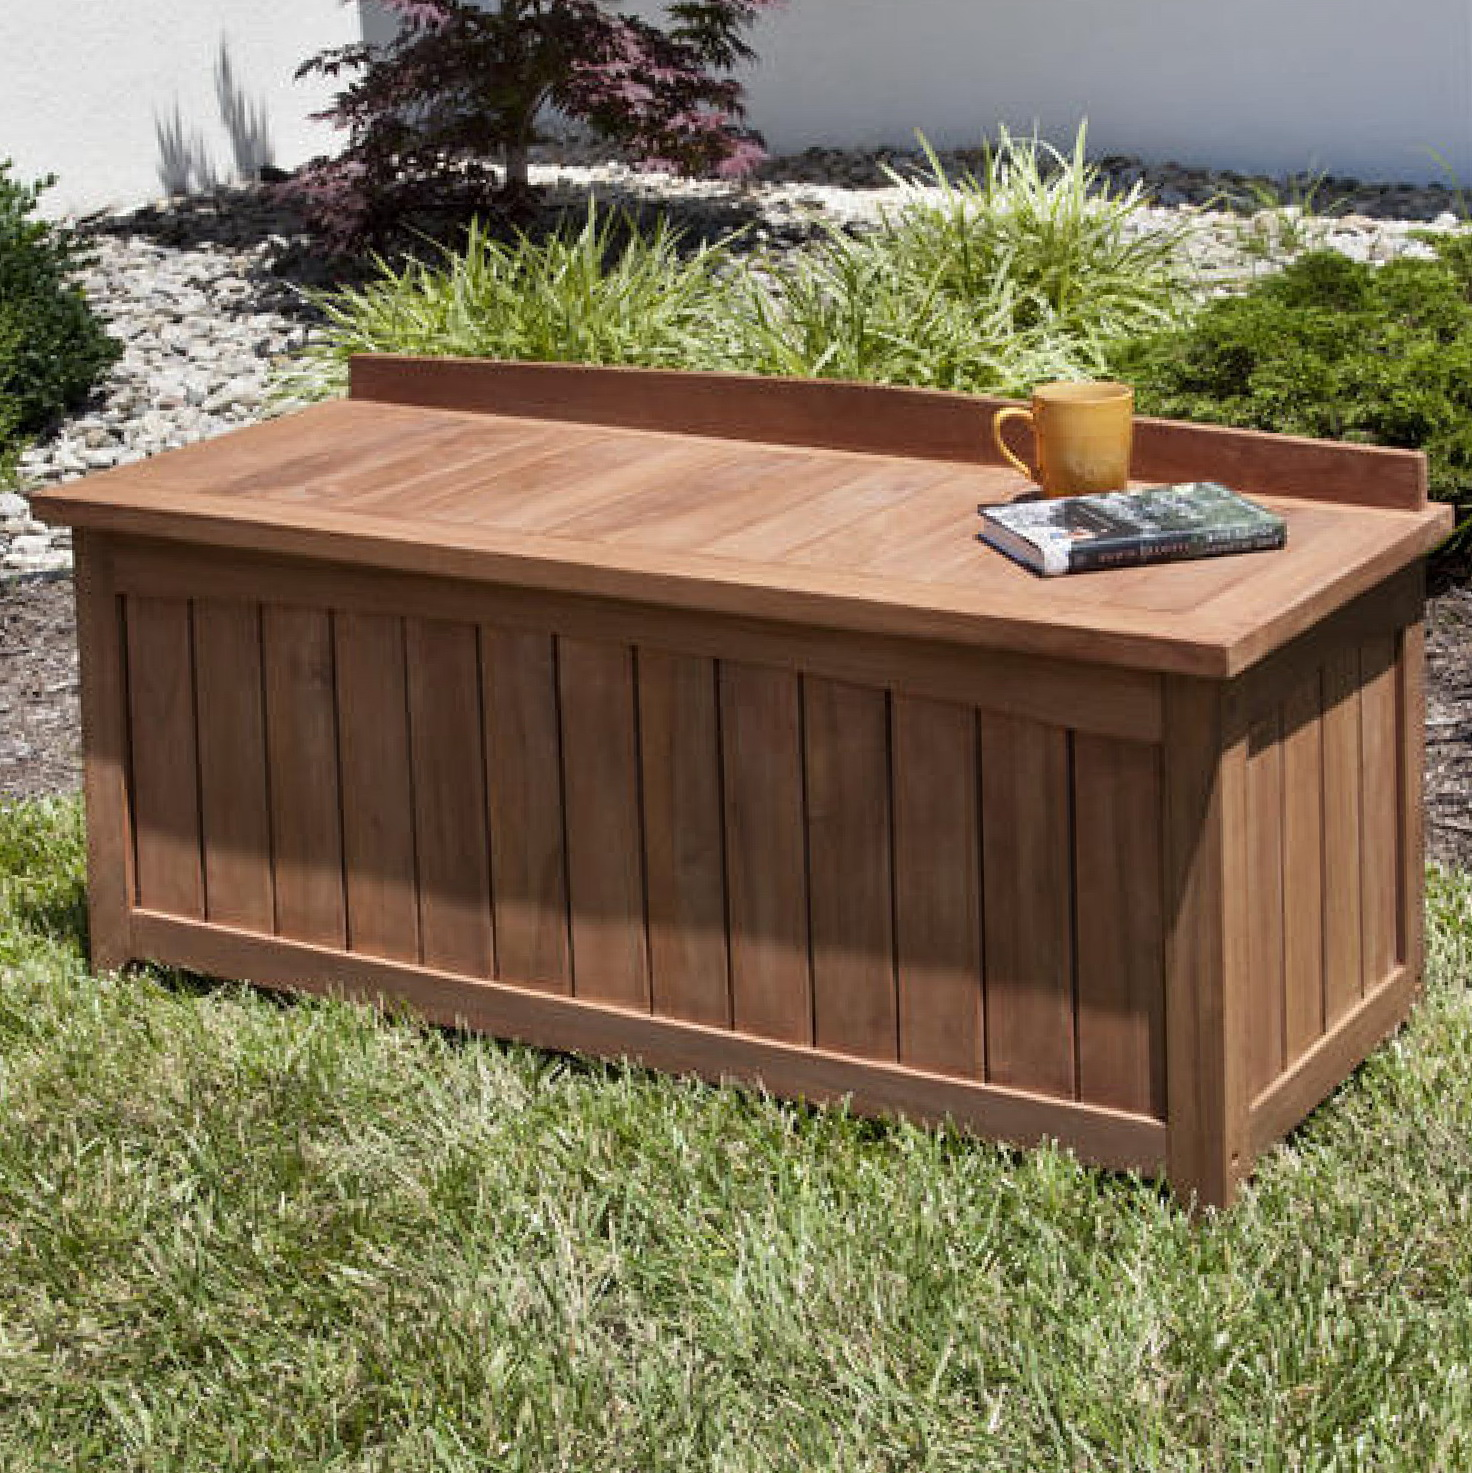 keter outdoor bench instructions